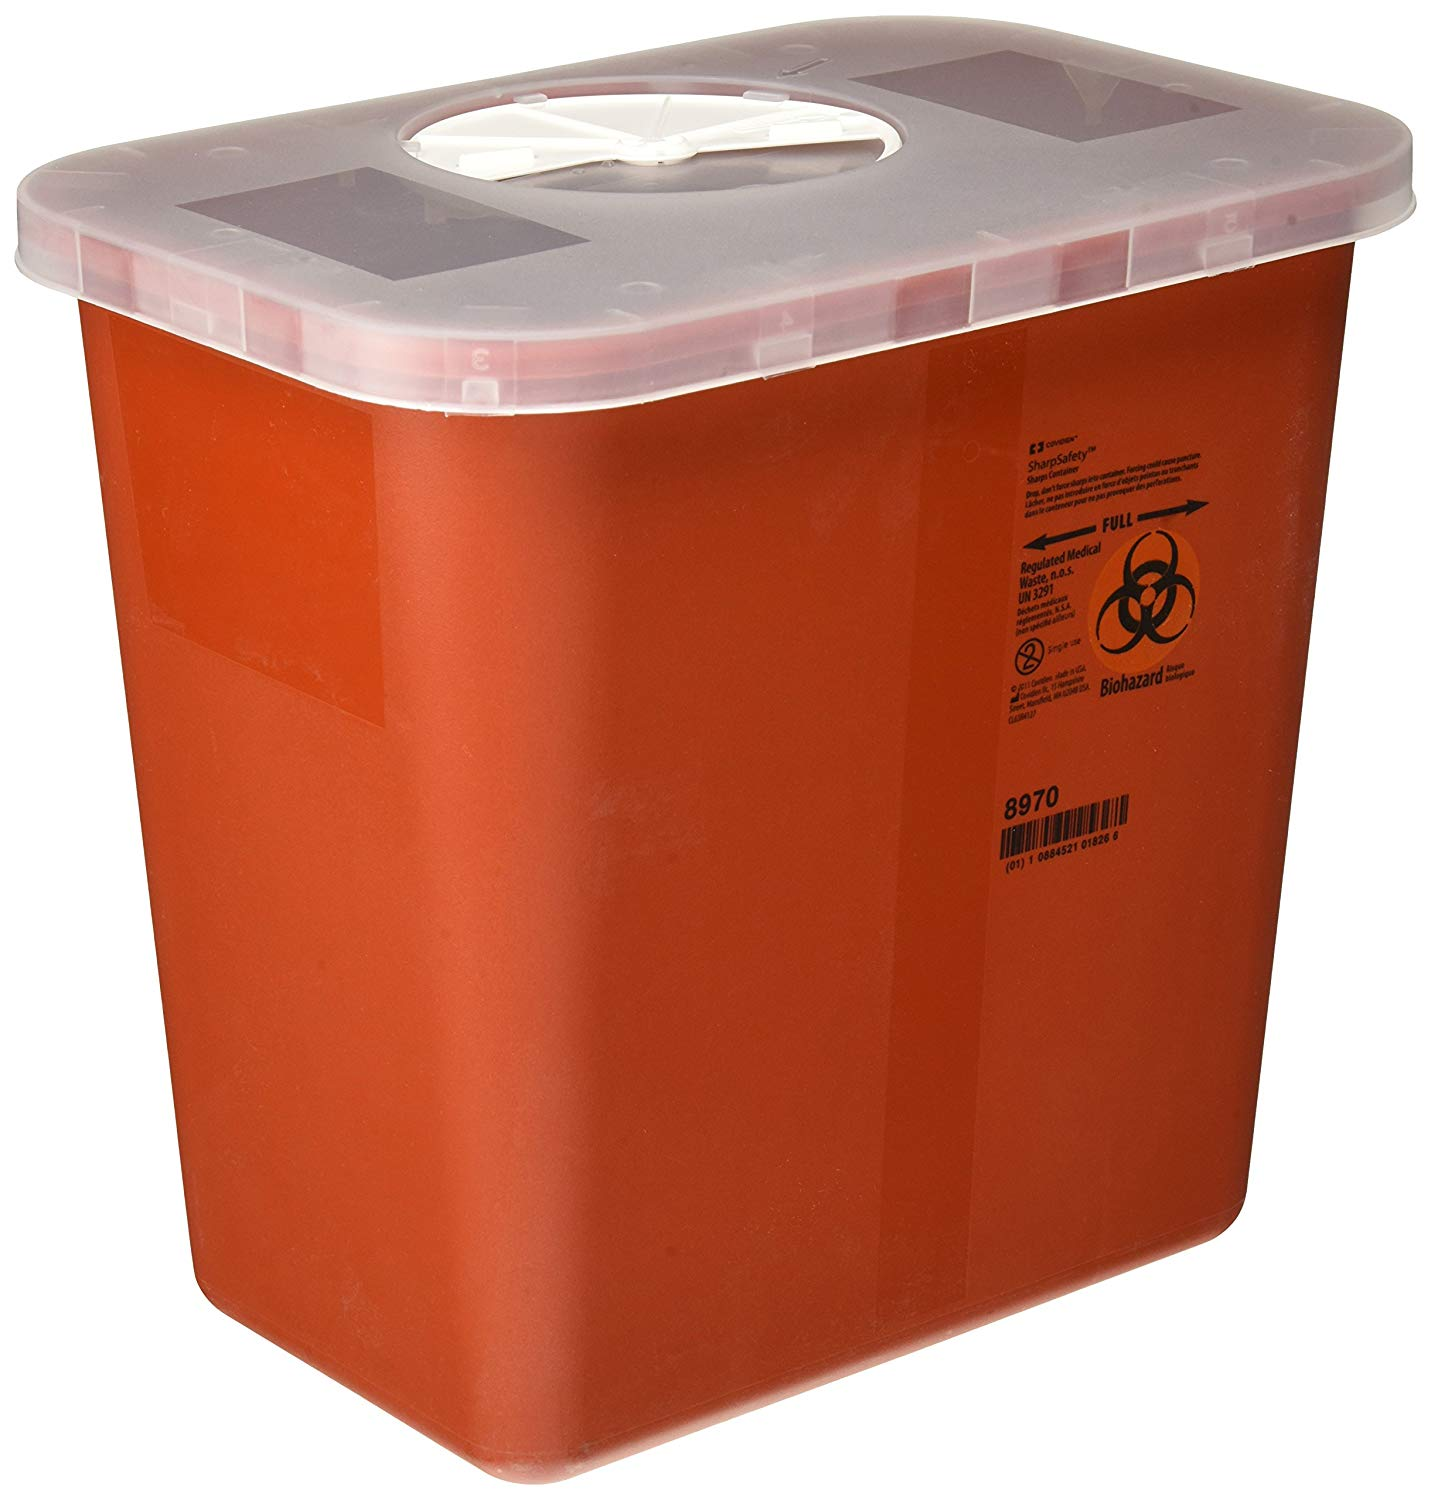 Kendall Covidien Multi-Purpose Sharps Container with Rotor Lid, Red, Adjustable rotor opening or hinged lids aWalmartmodate a variety of sharps.., By KendallCovidien,USA